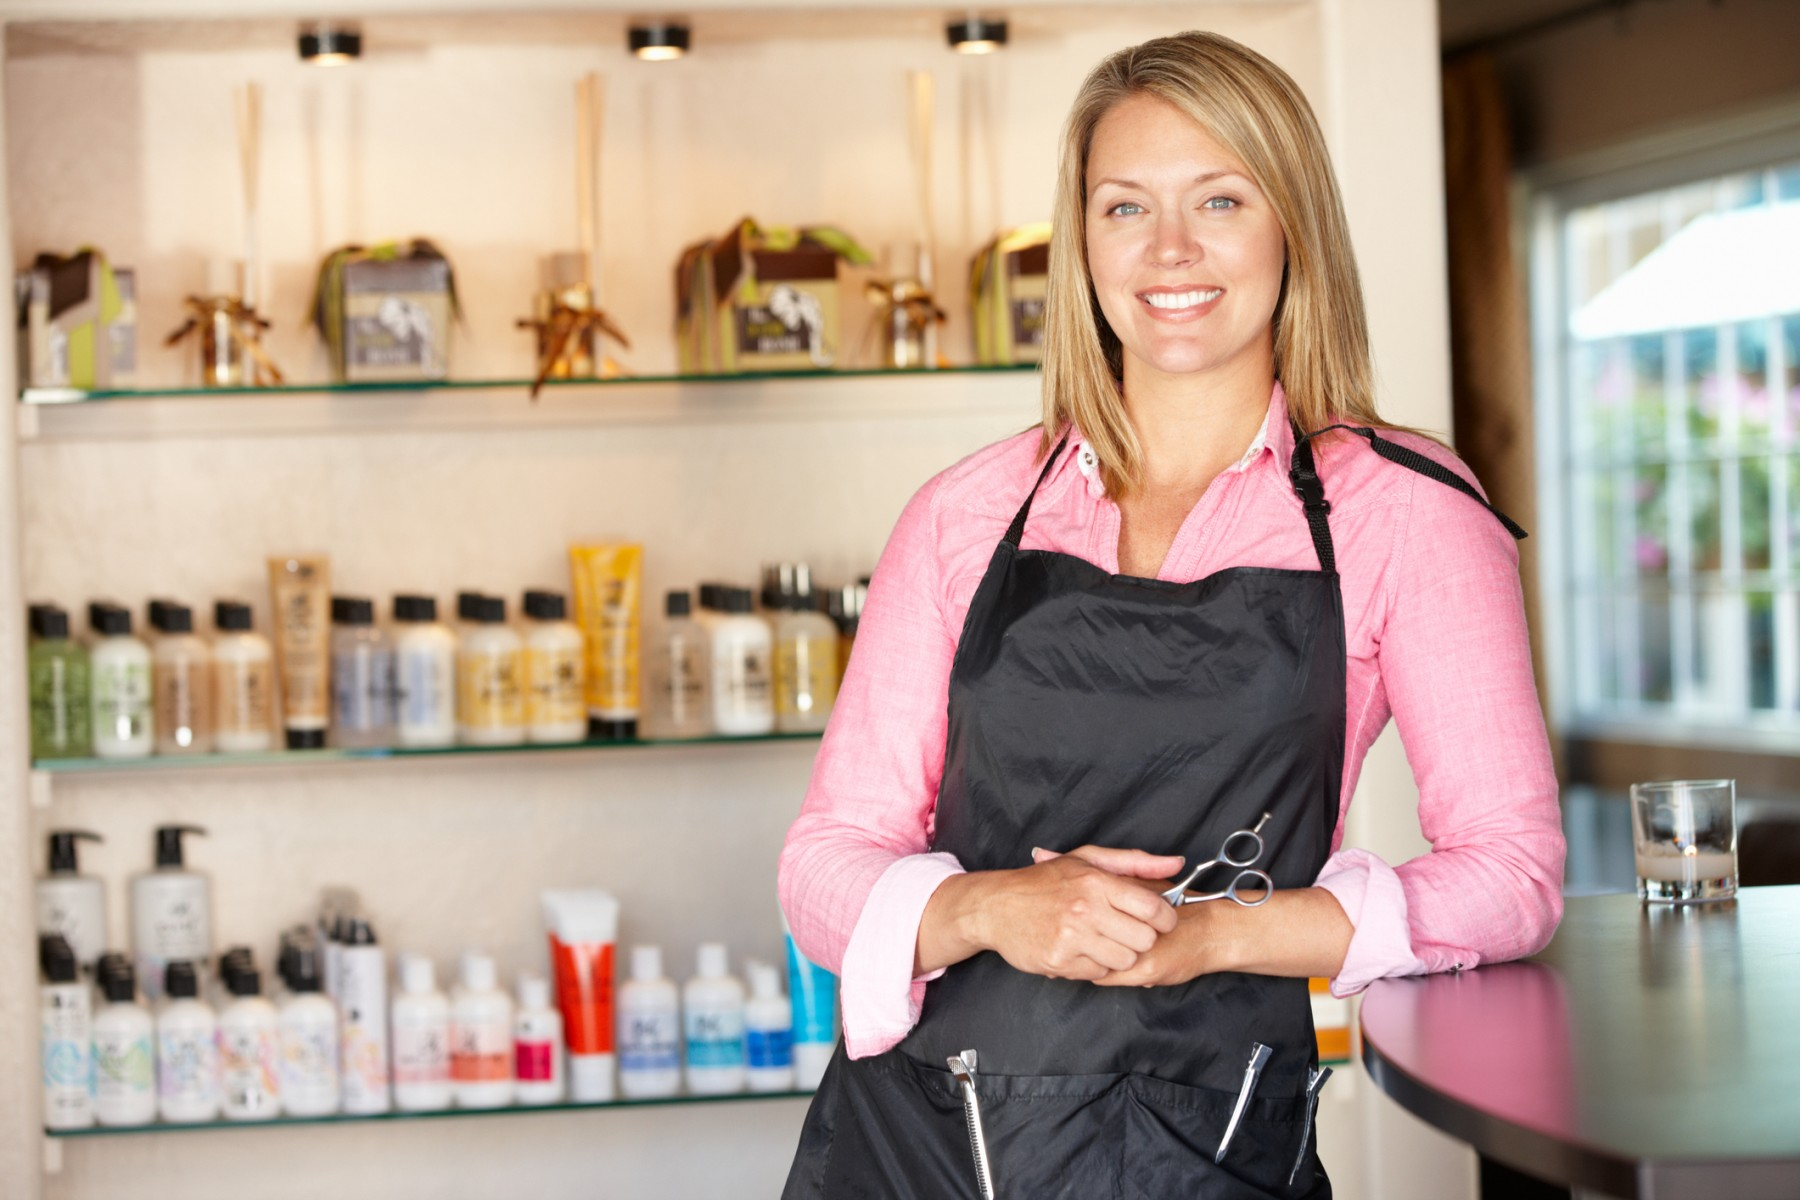 Stylish Hair Salon For Sale in Newcastle in New South Wales, Australia